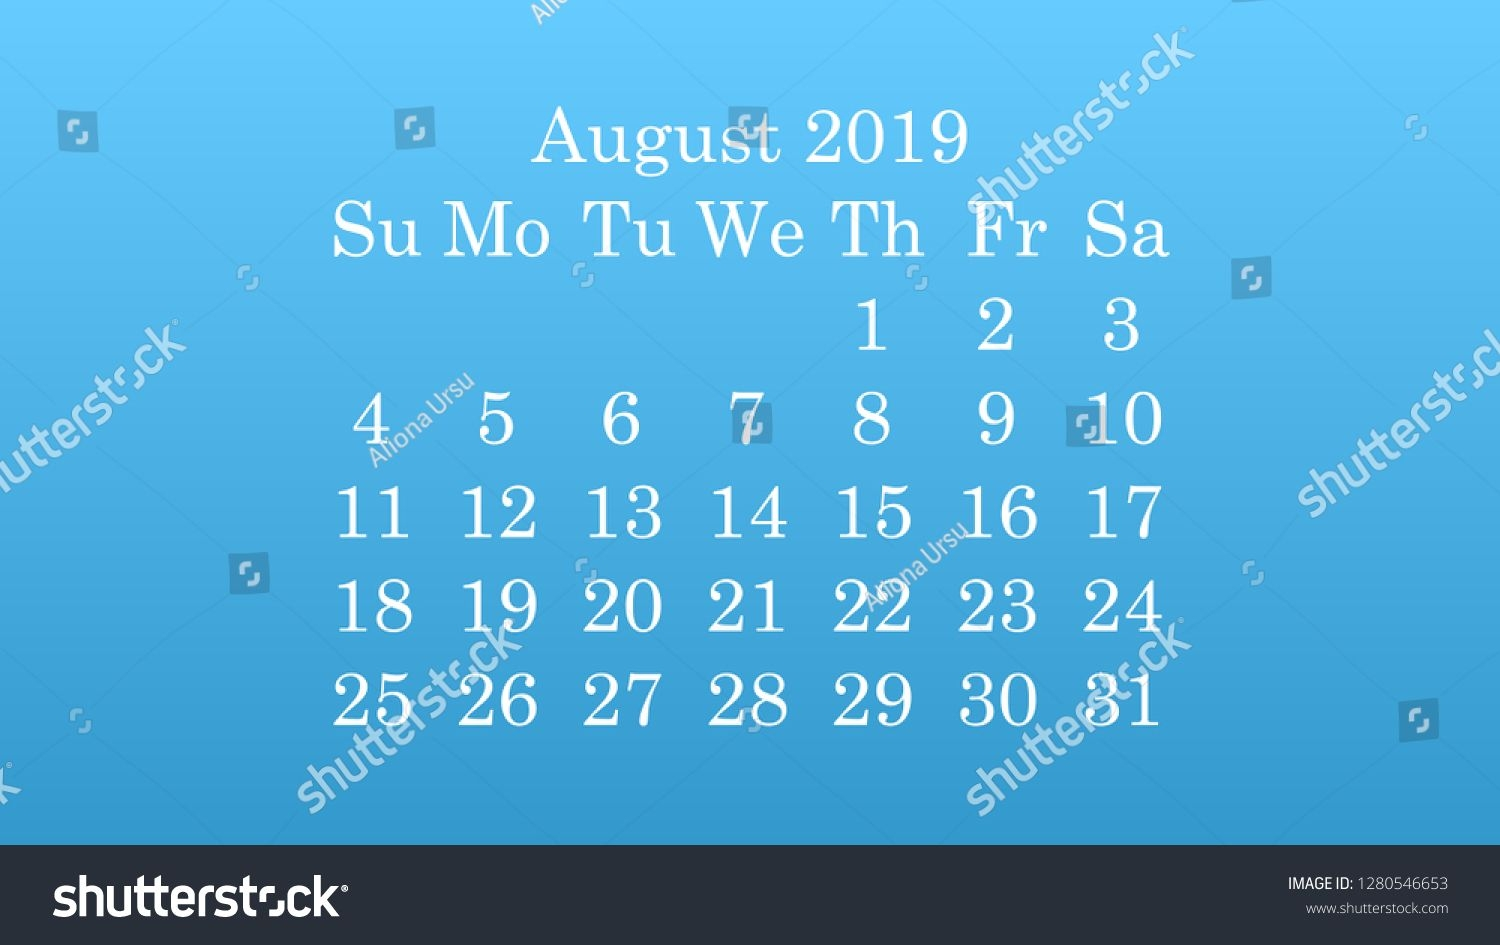 August 2019 Calendar Images For Desktop Background Calendar 1500x945